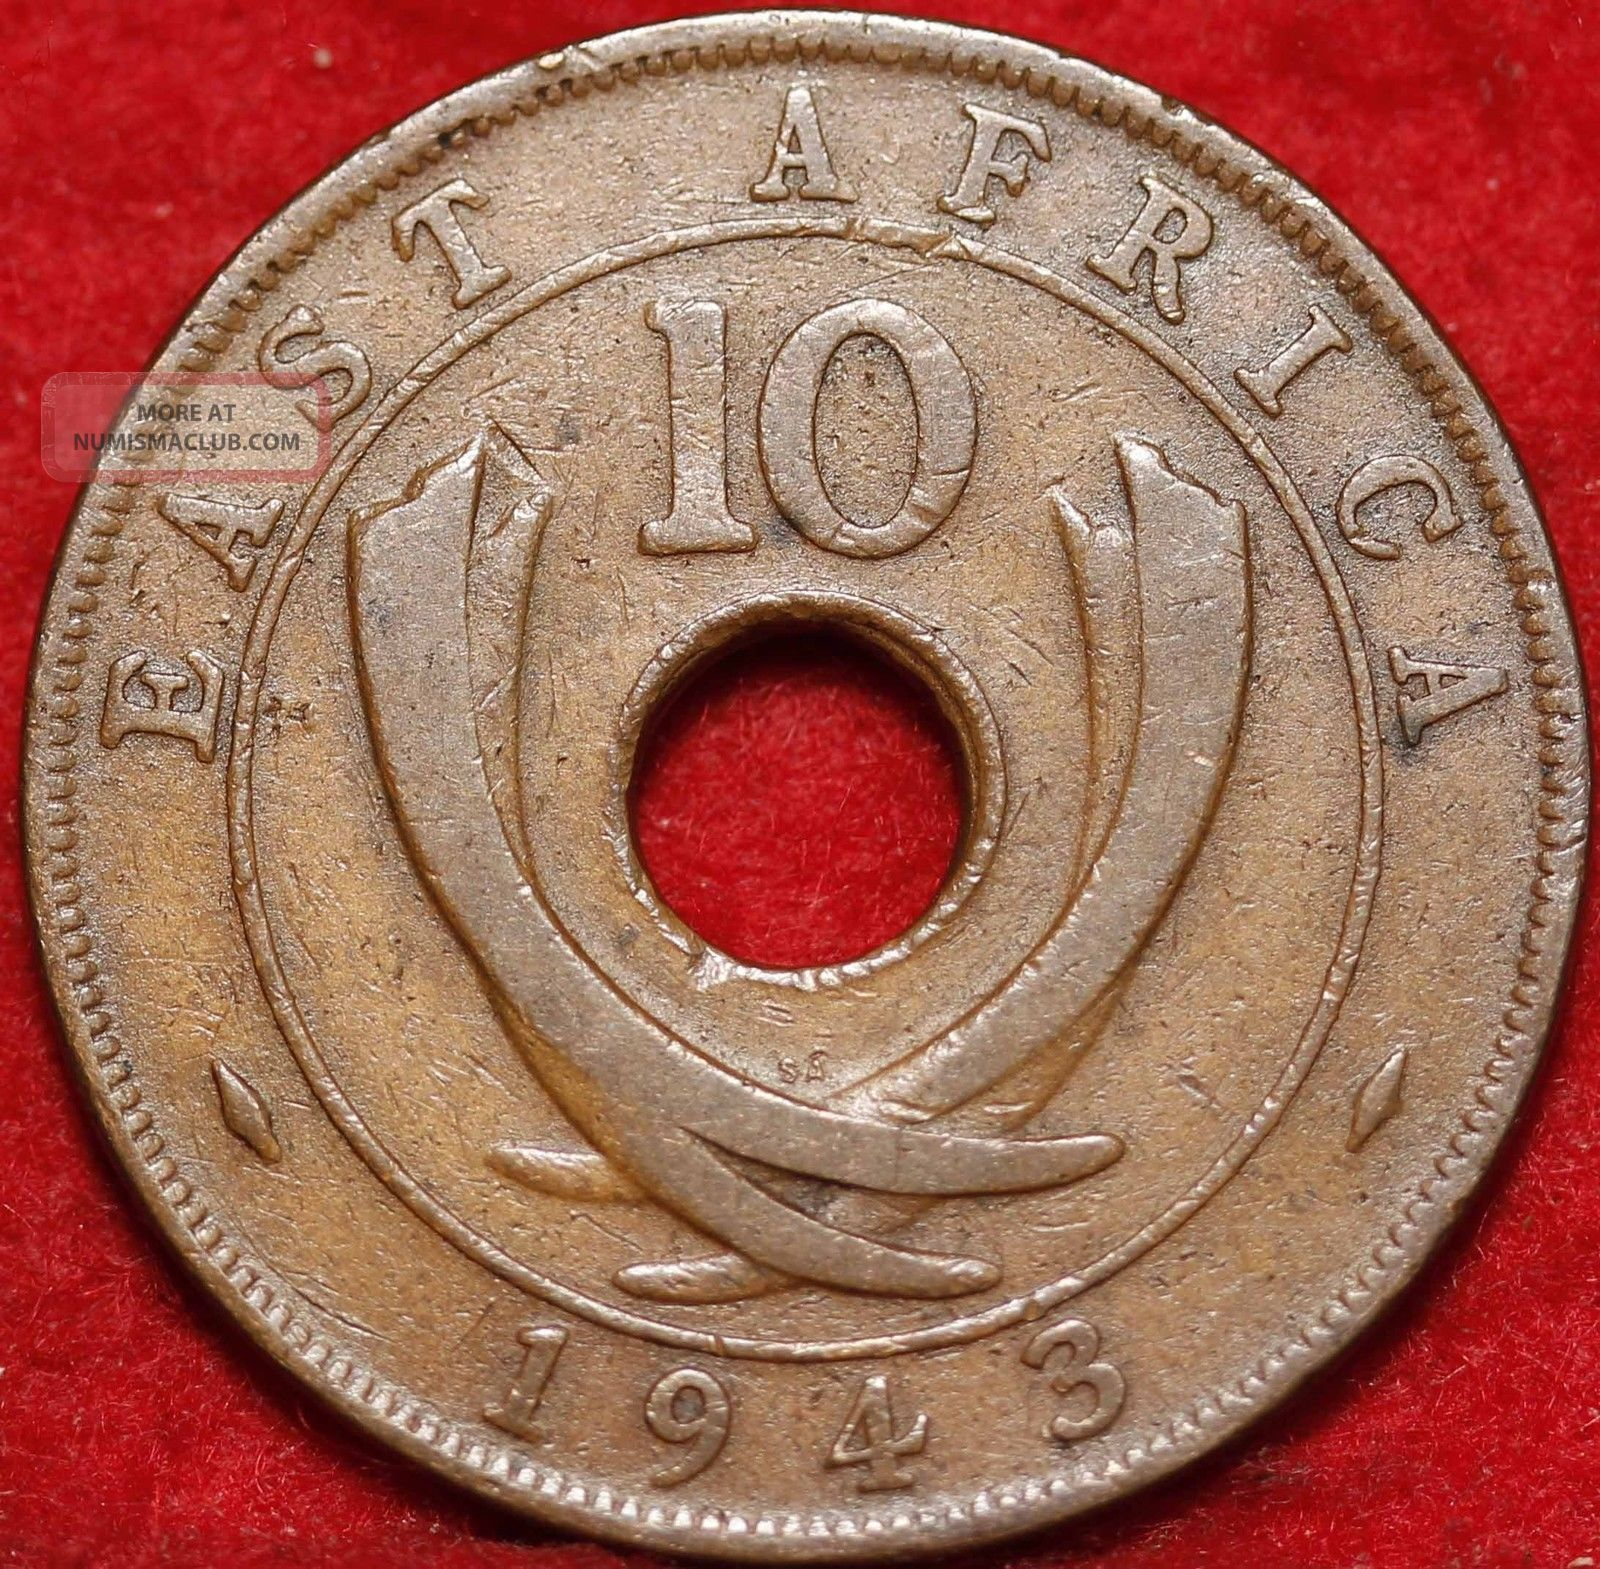 1943 East Africa 10 Cents Foreign Coin S H